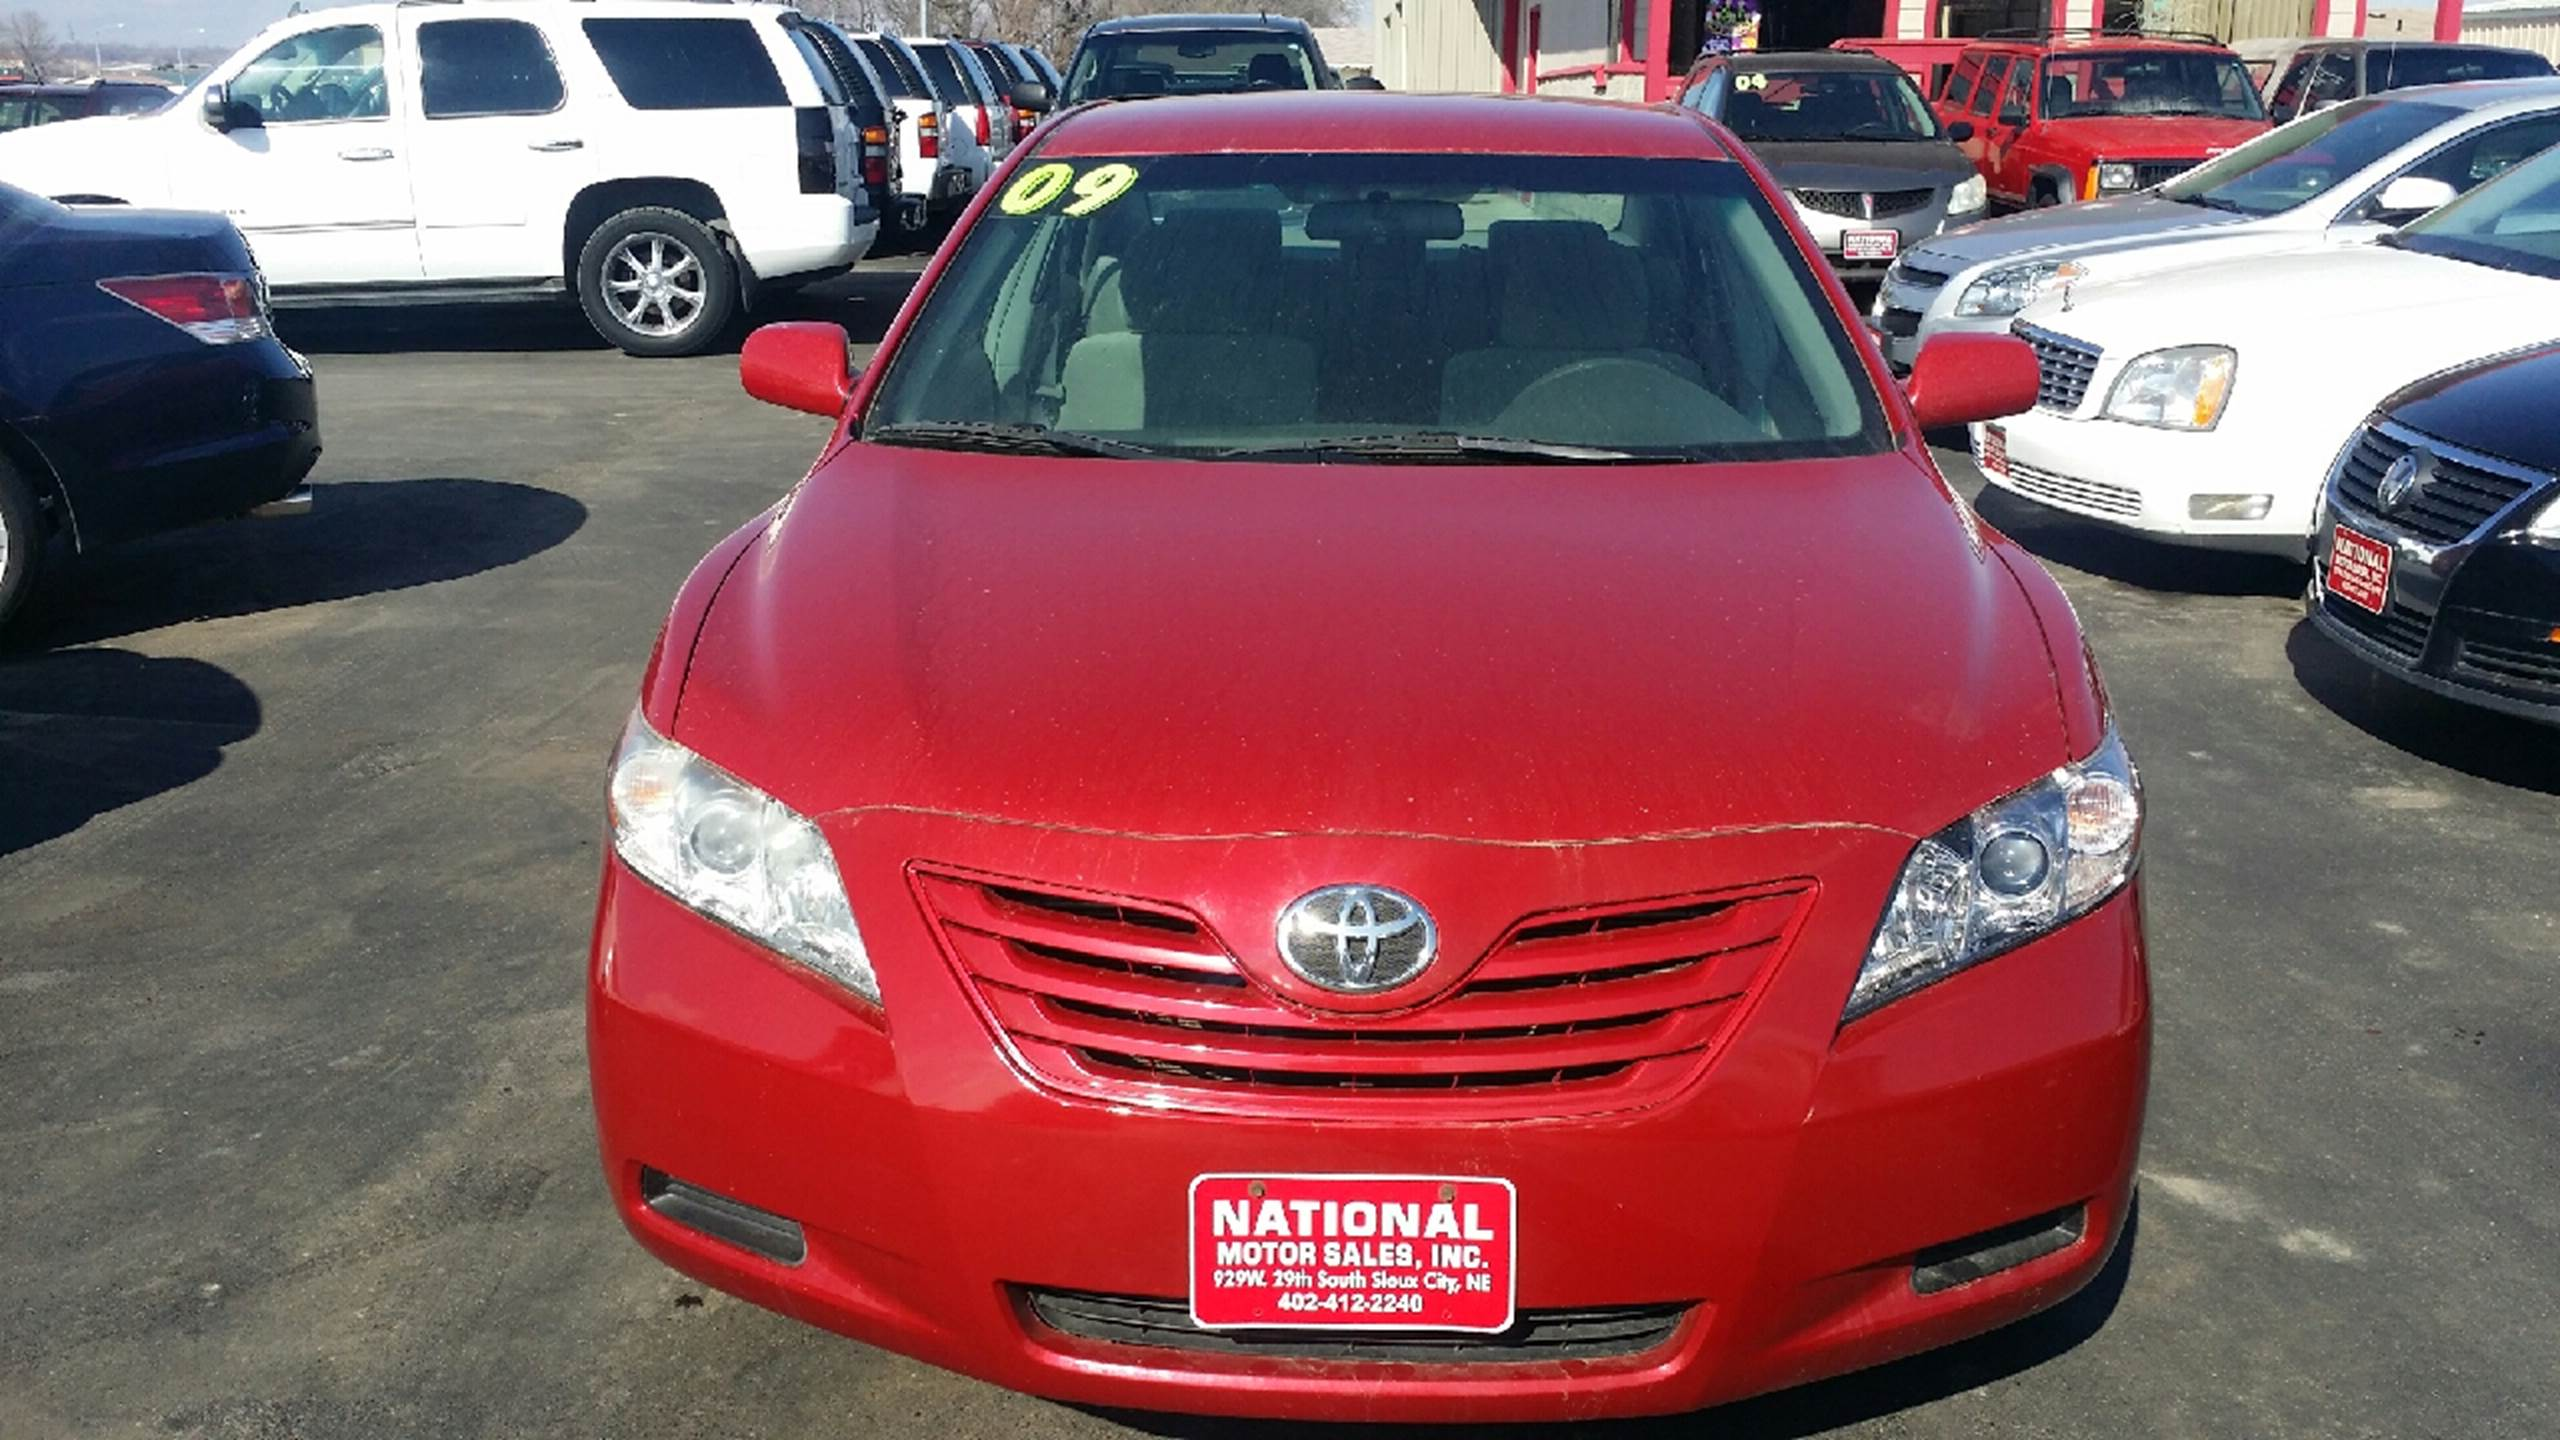 2009 Toyota Camry for sale in South Sioux City, NE